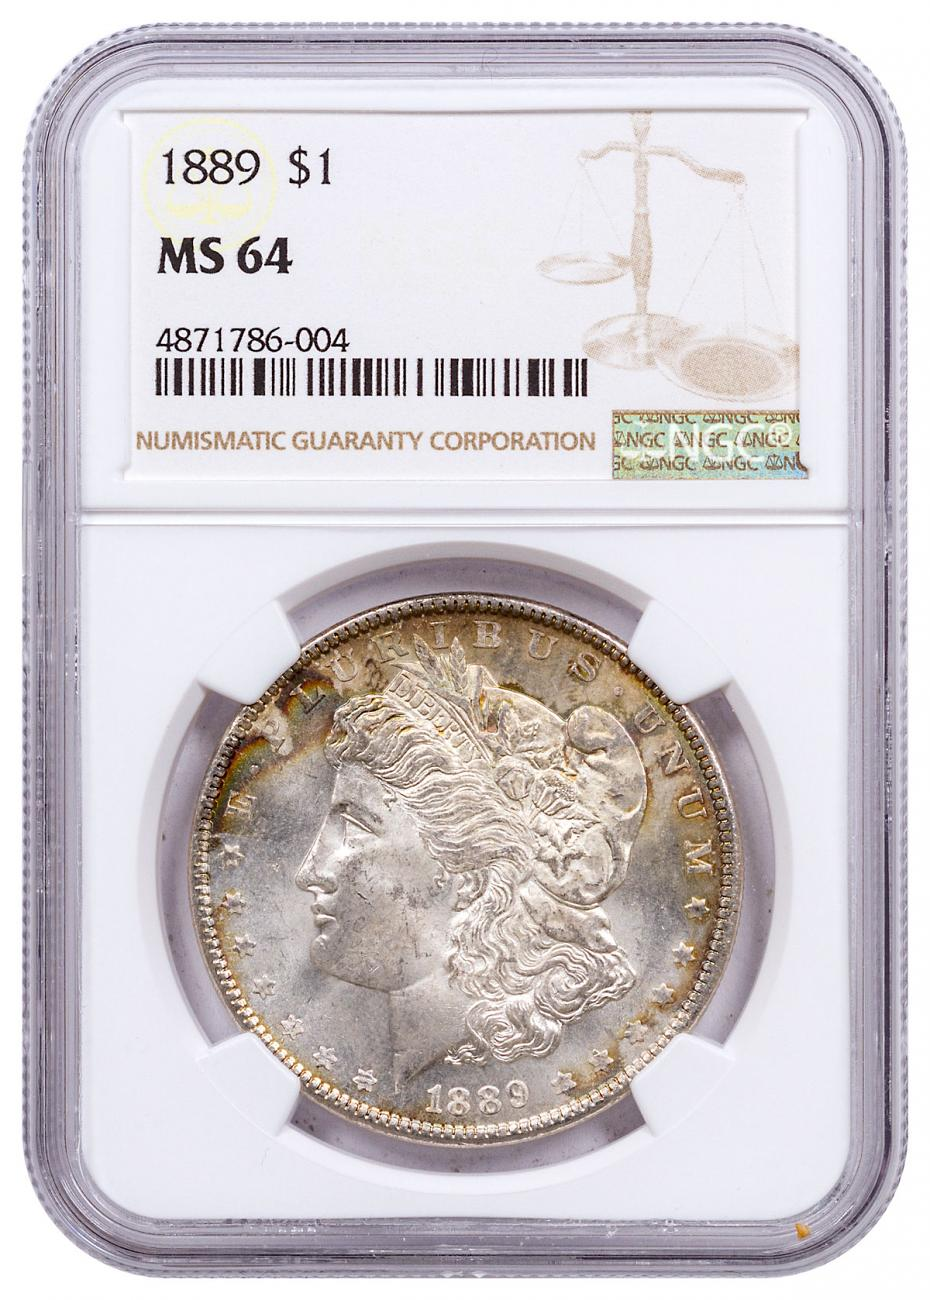 1889 Morgan Silver Dollar NGC MS64 CPCR 6004